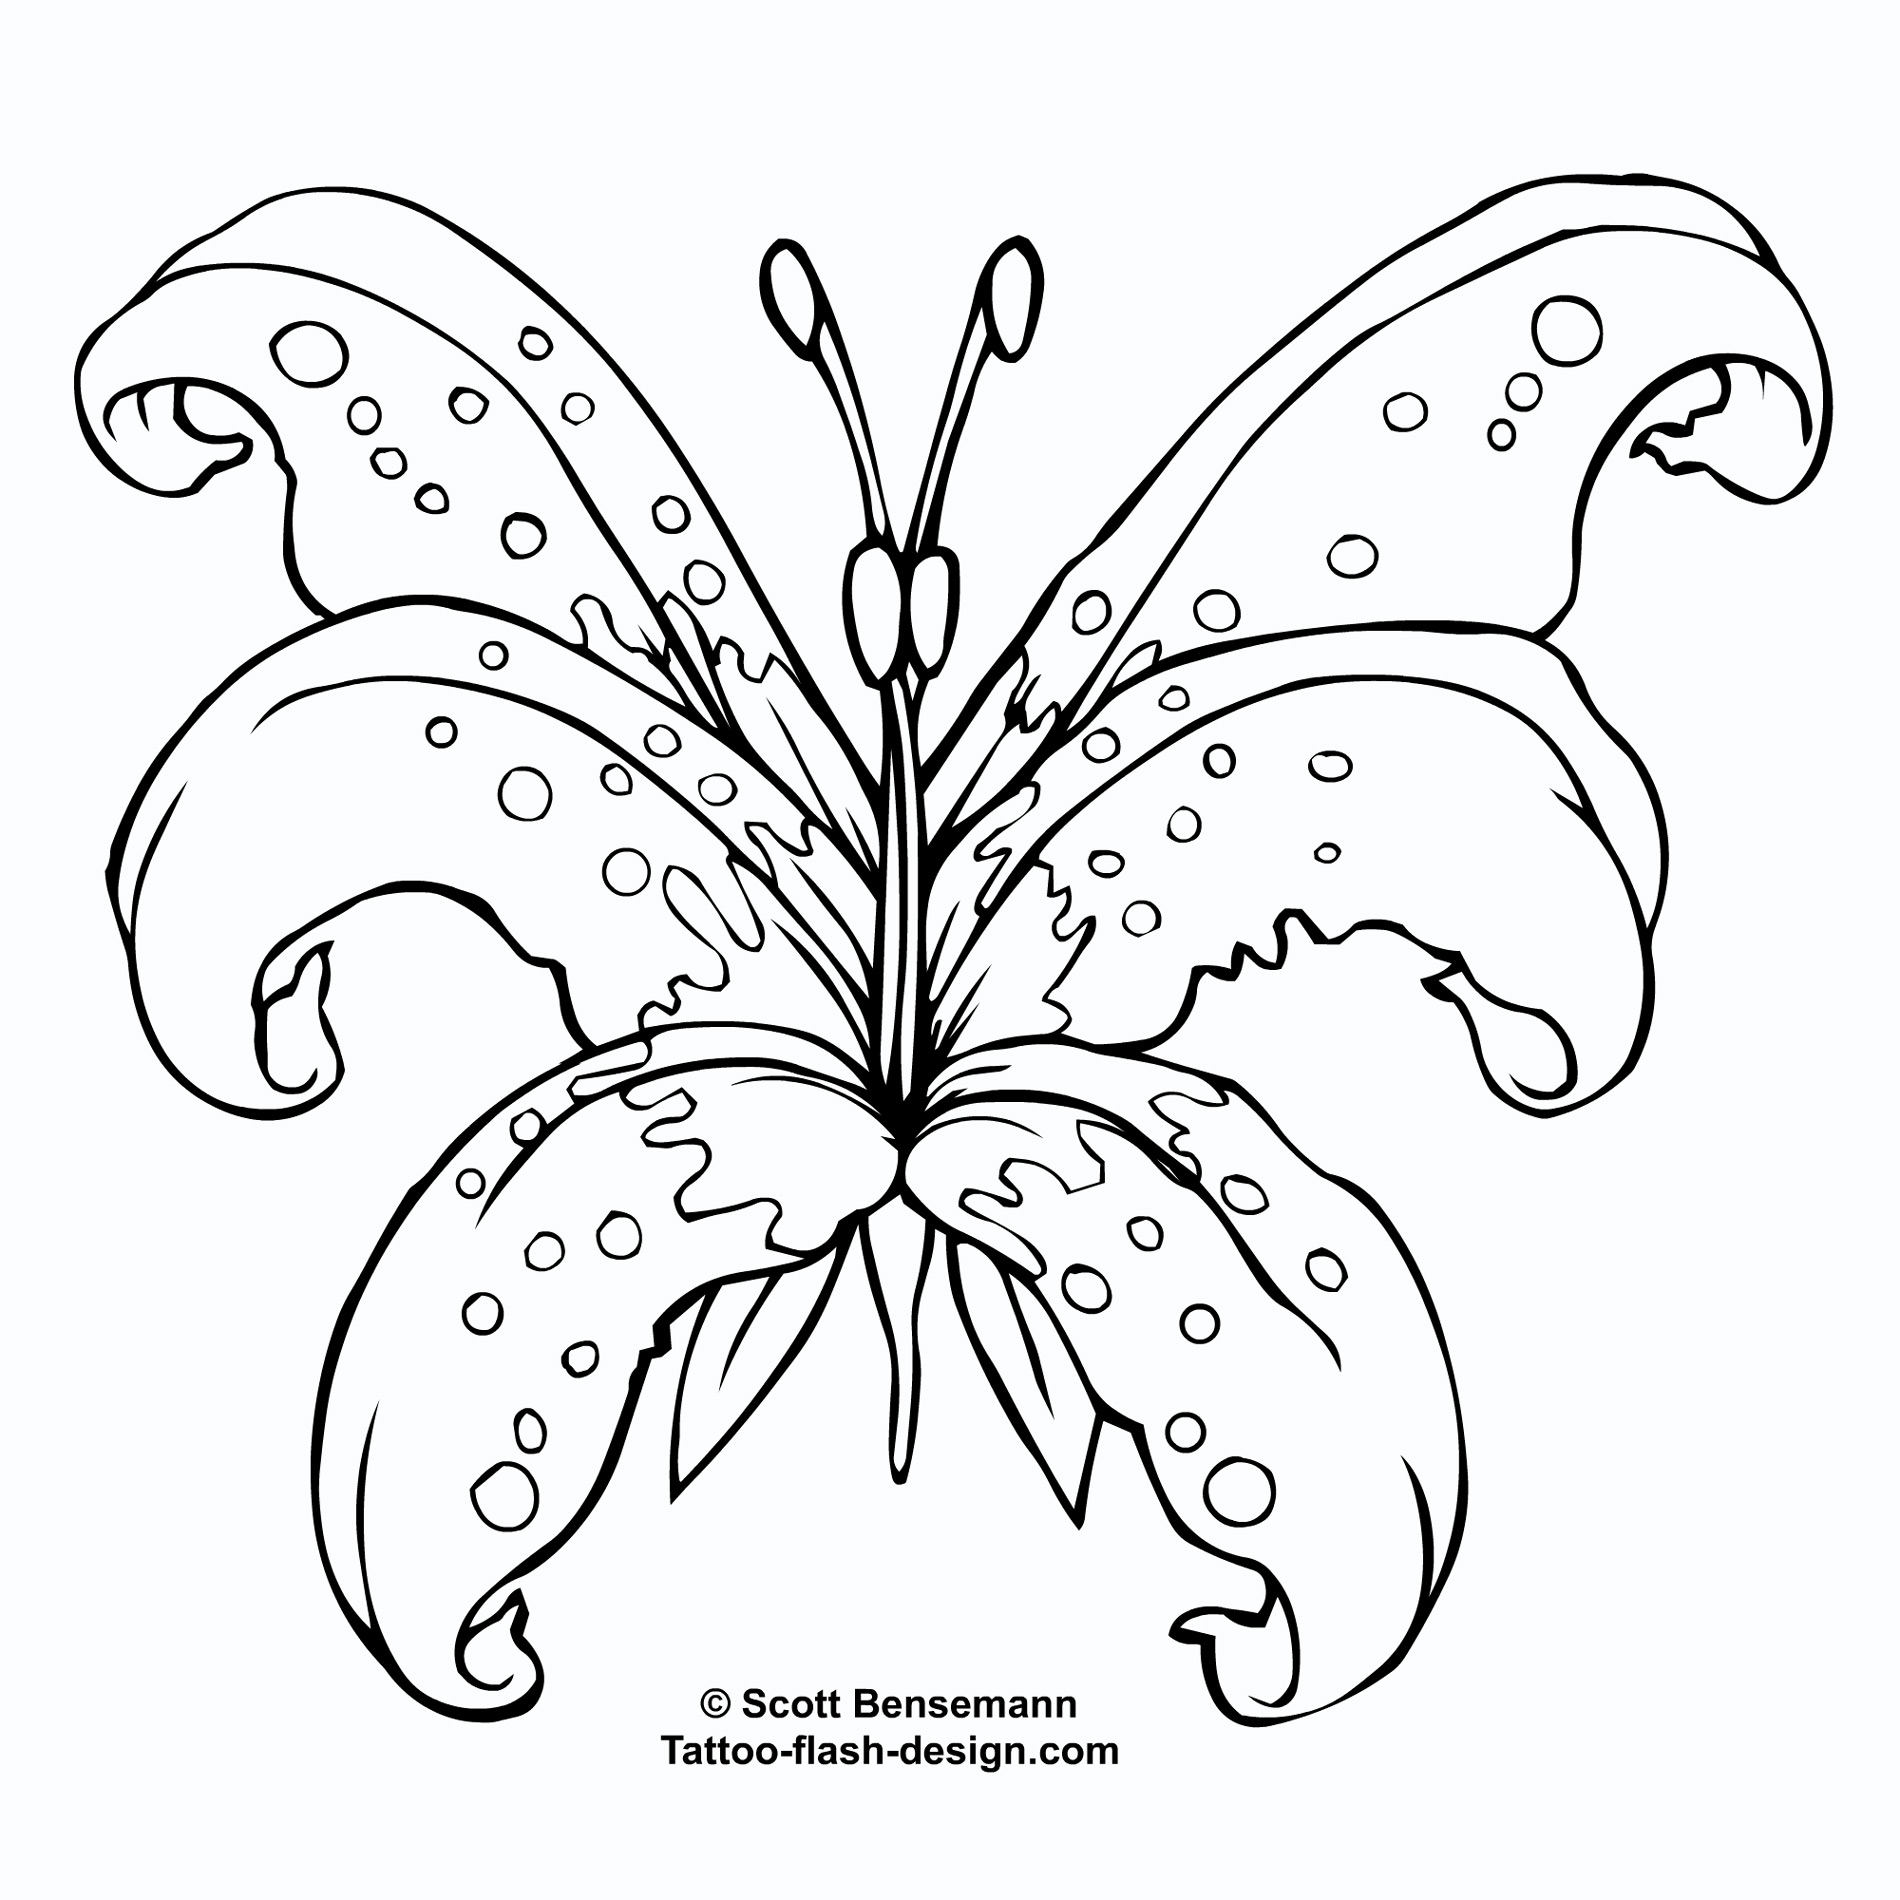 Lily flower tattoos design awesome lily flower tattoo design izmirmasajfo Image collections